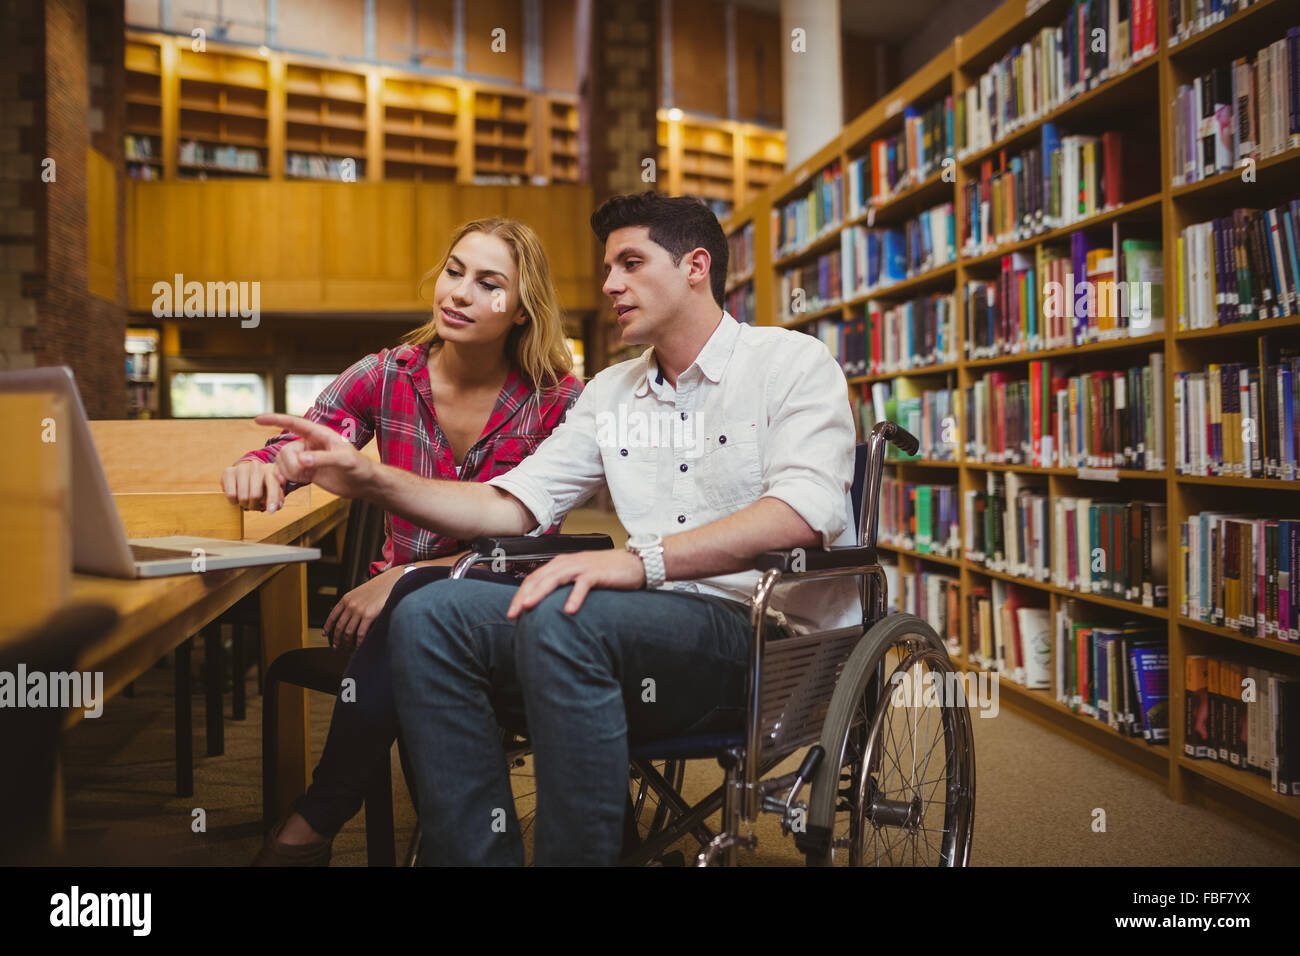 Student in wheelchair working with a classmate - Stock Image